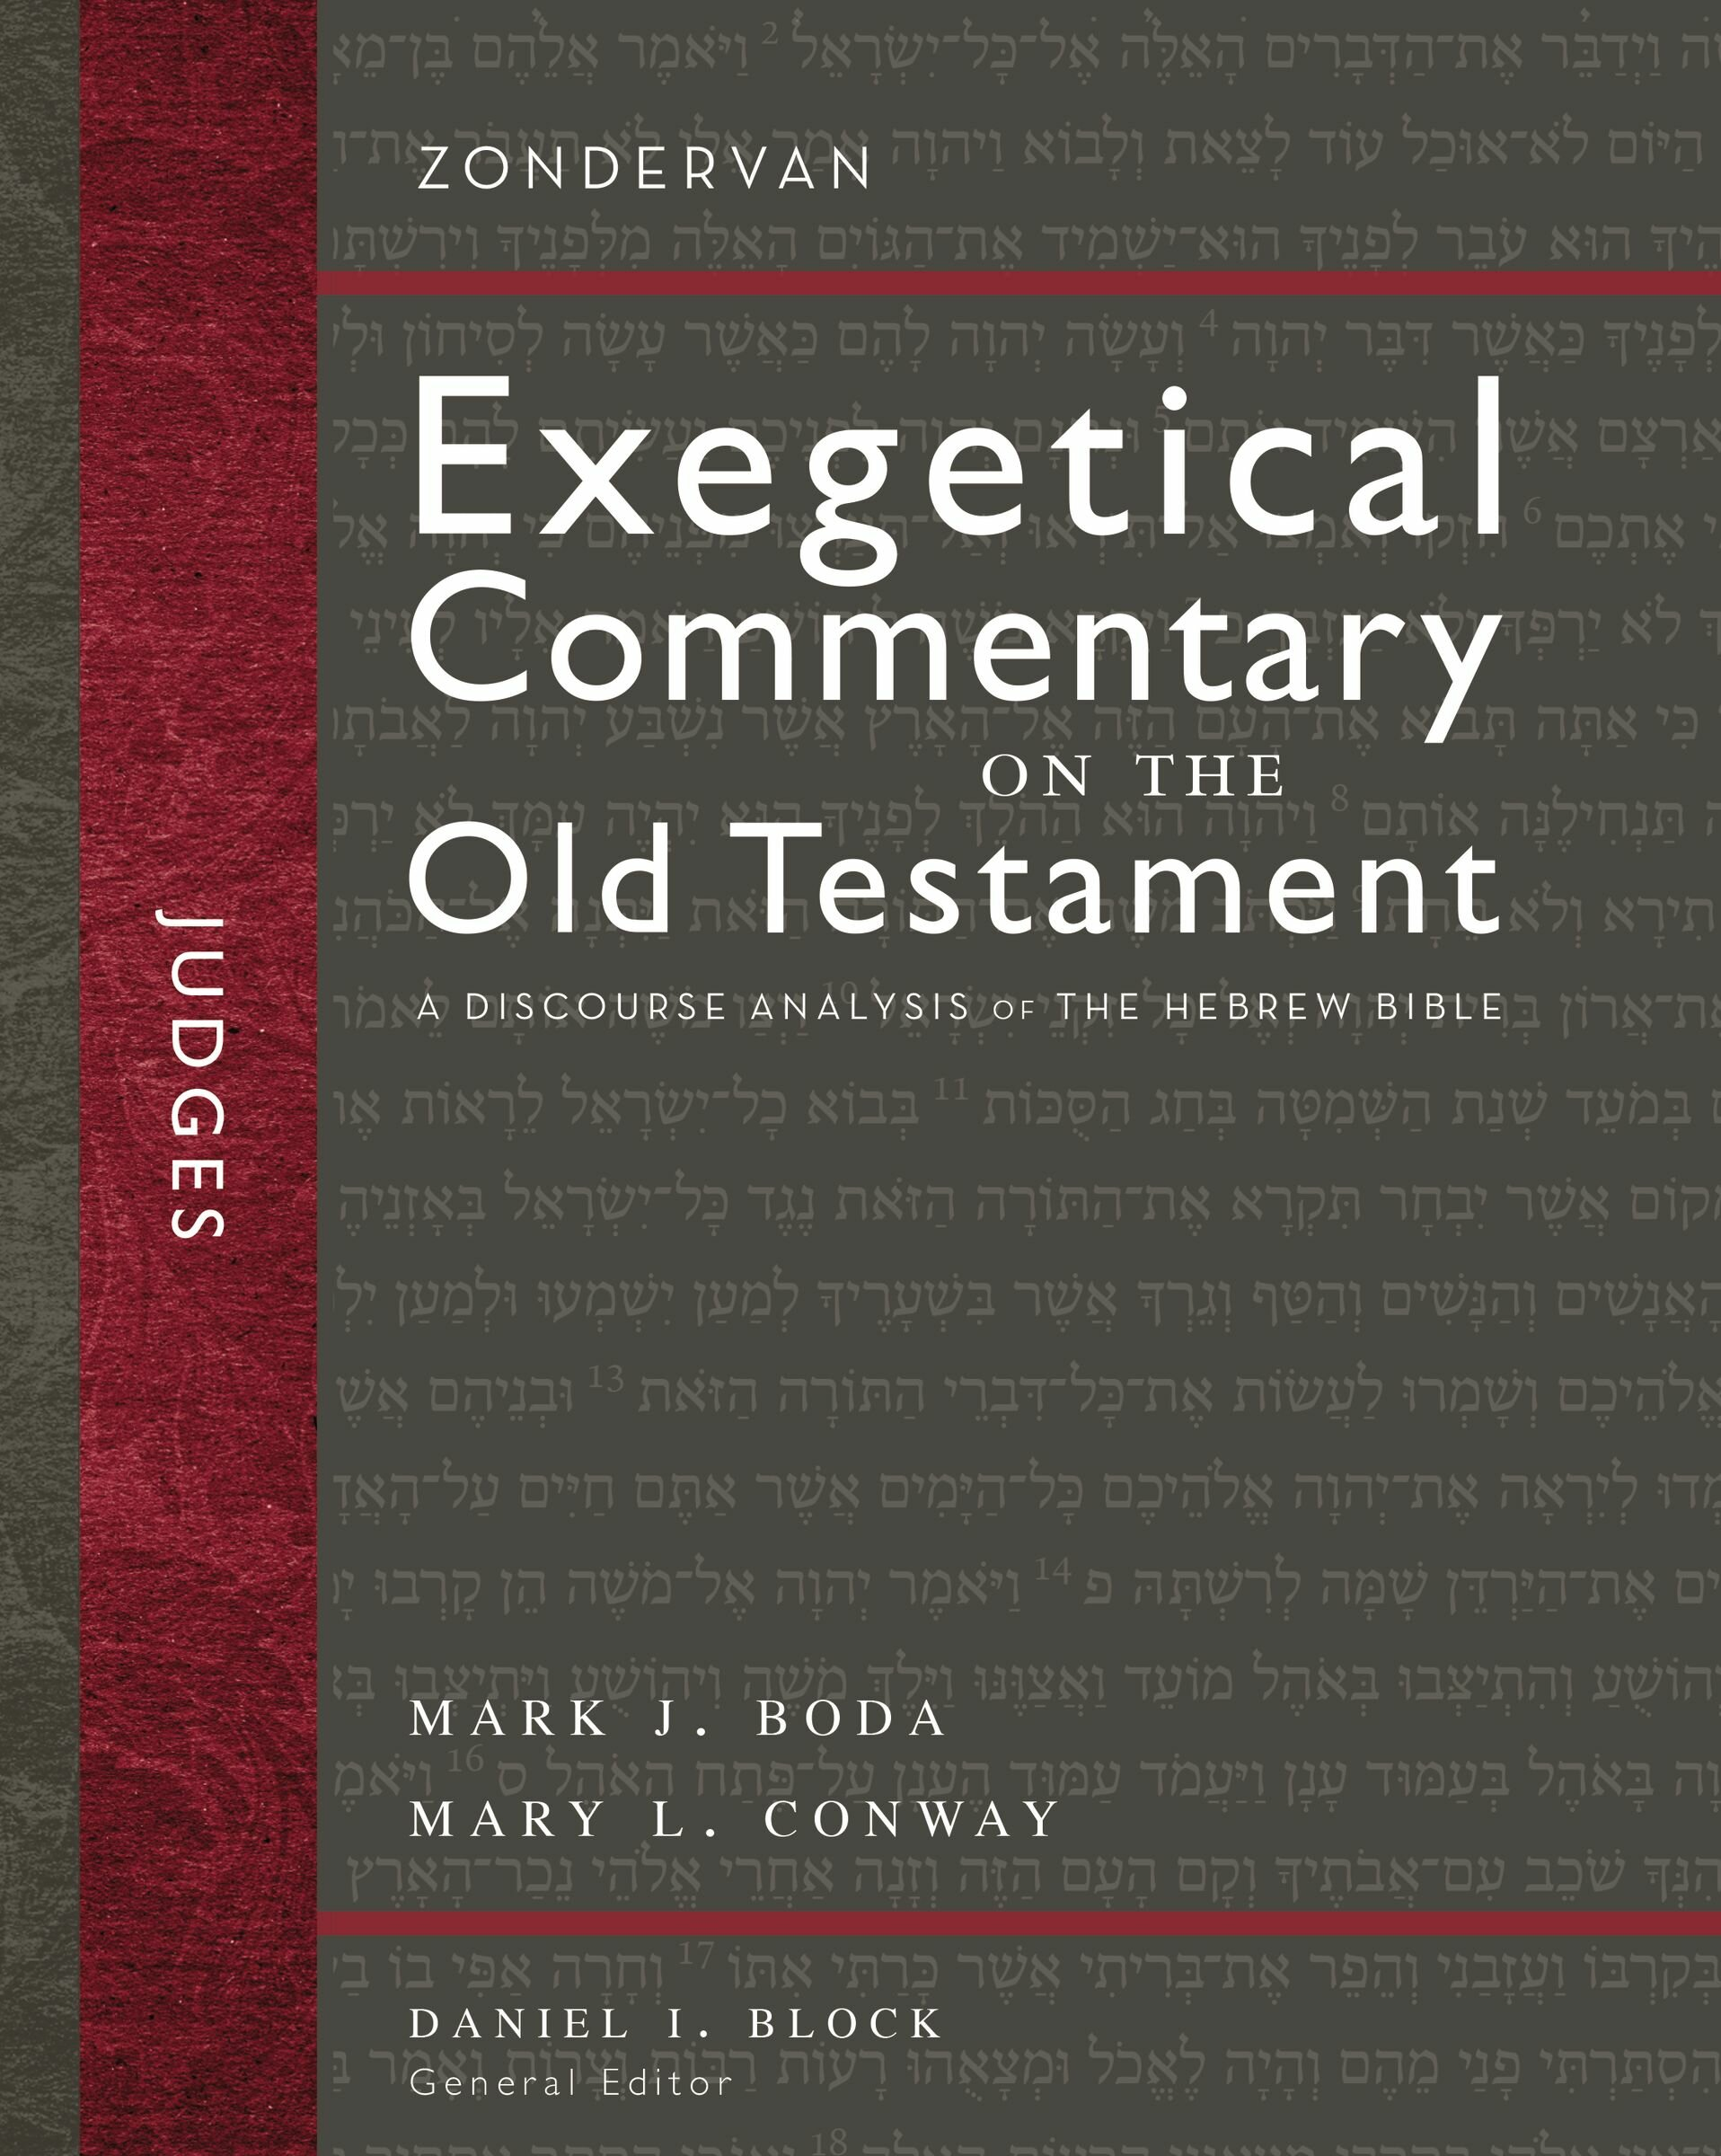 Judges: A Discourse Analysis of the Hebrew Bible (Zondervan Exegetical Commentary on the Old Testament)